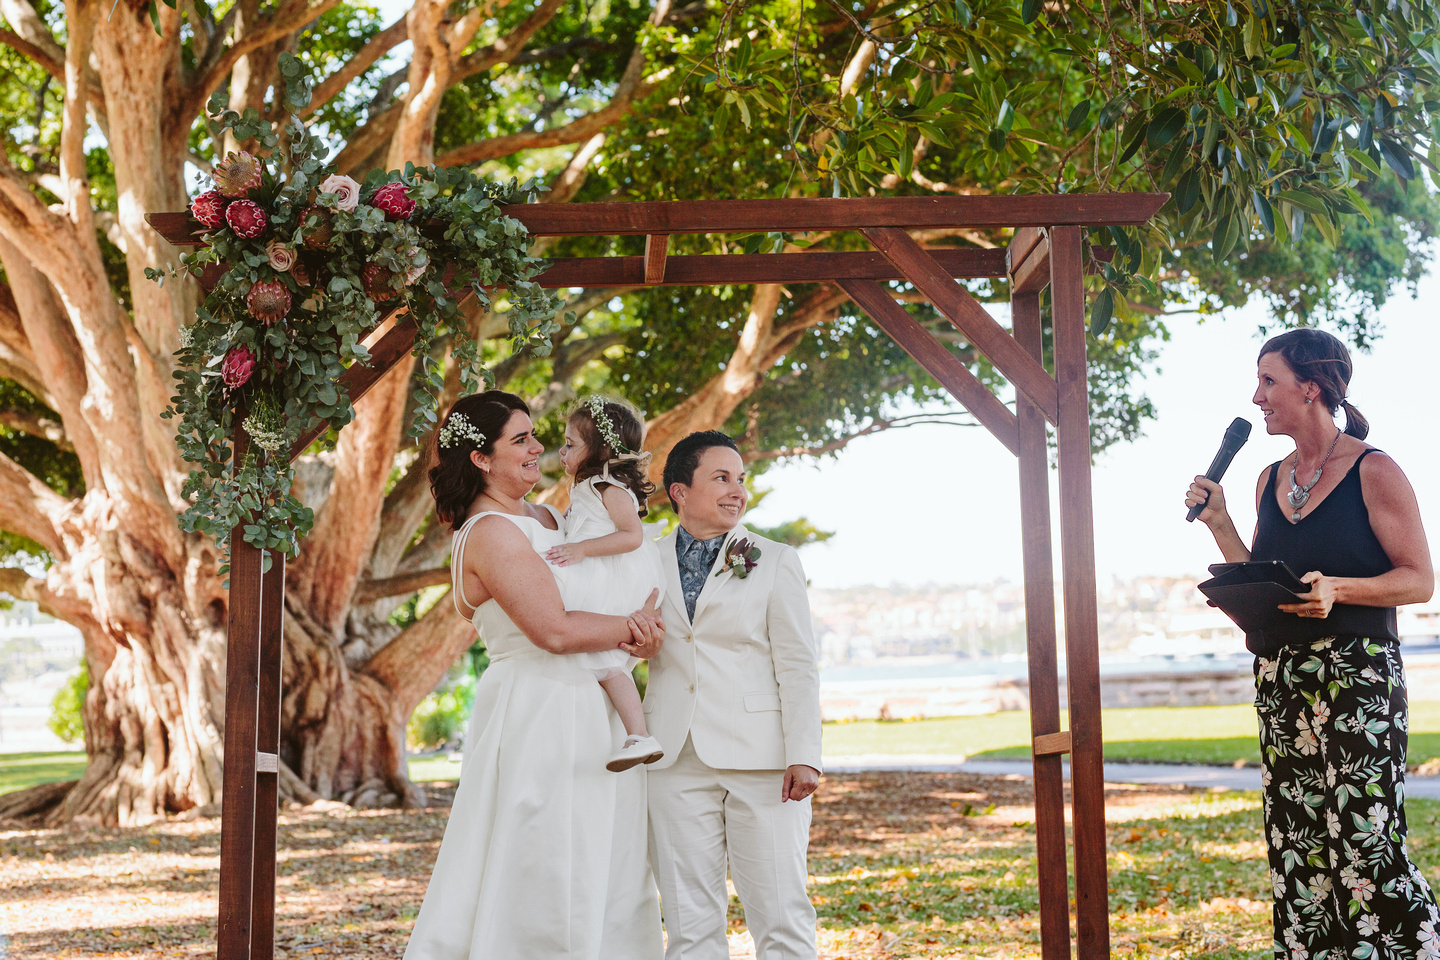 Couple on their wedding day with their daughter at The FIg Tree lawn Royal Botanic Garden Sydney